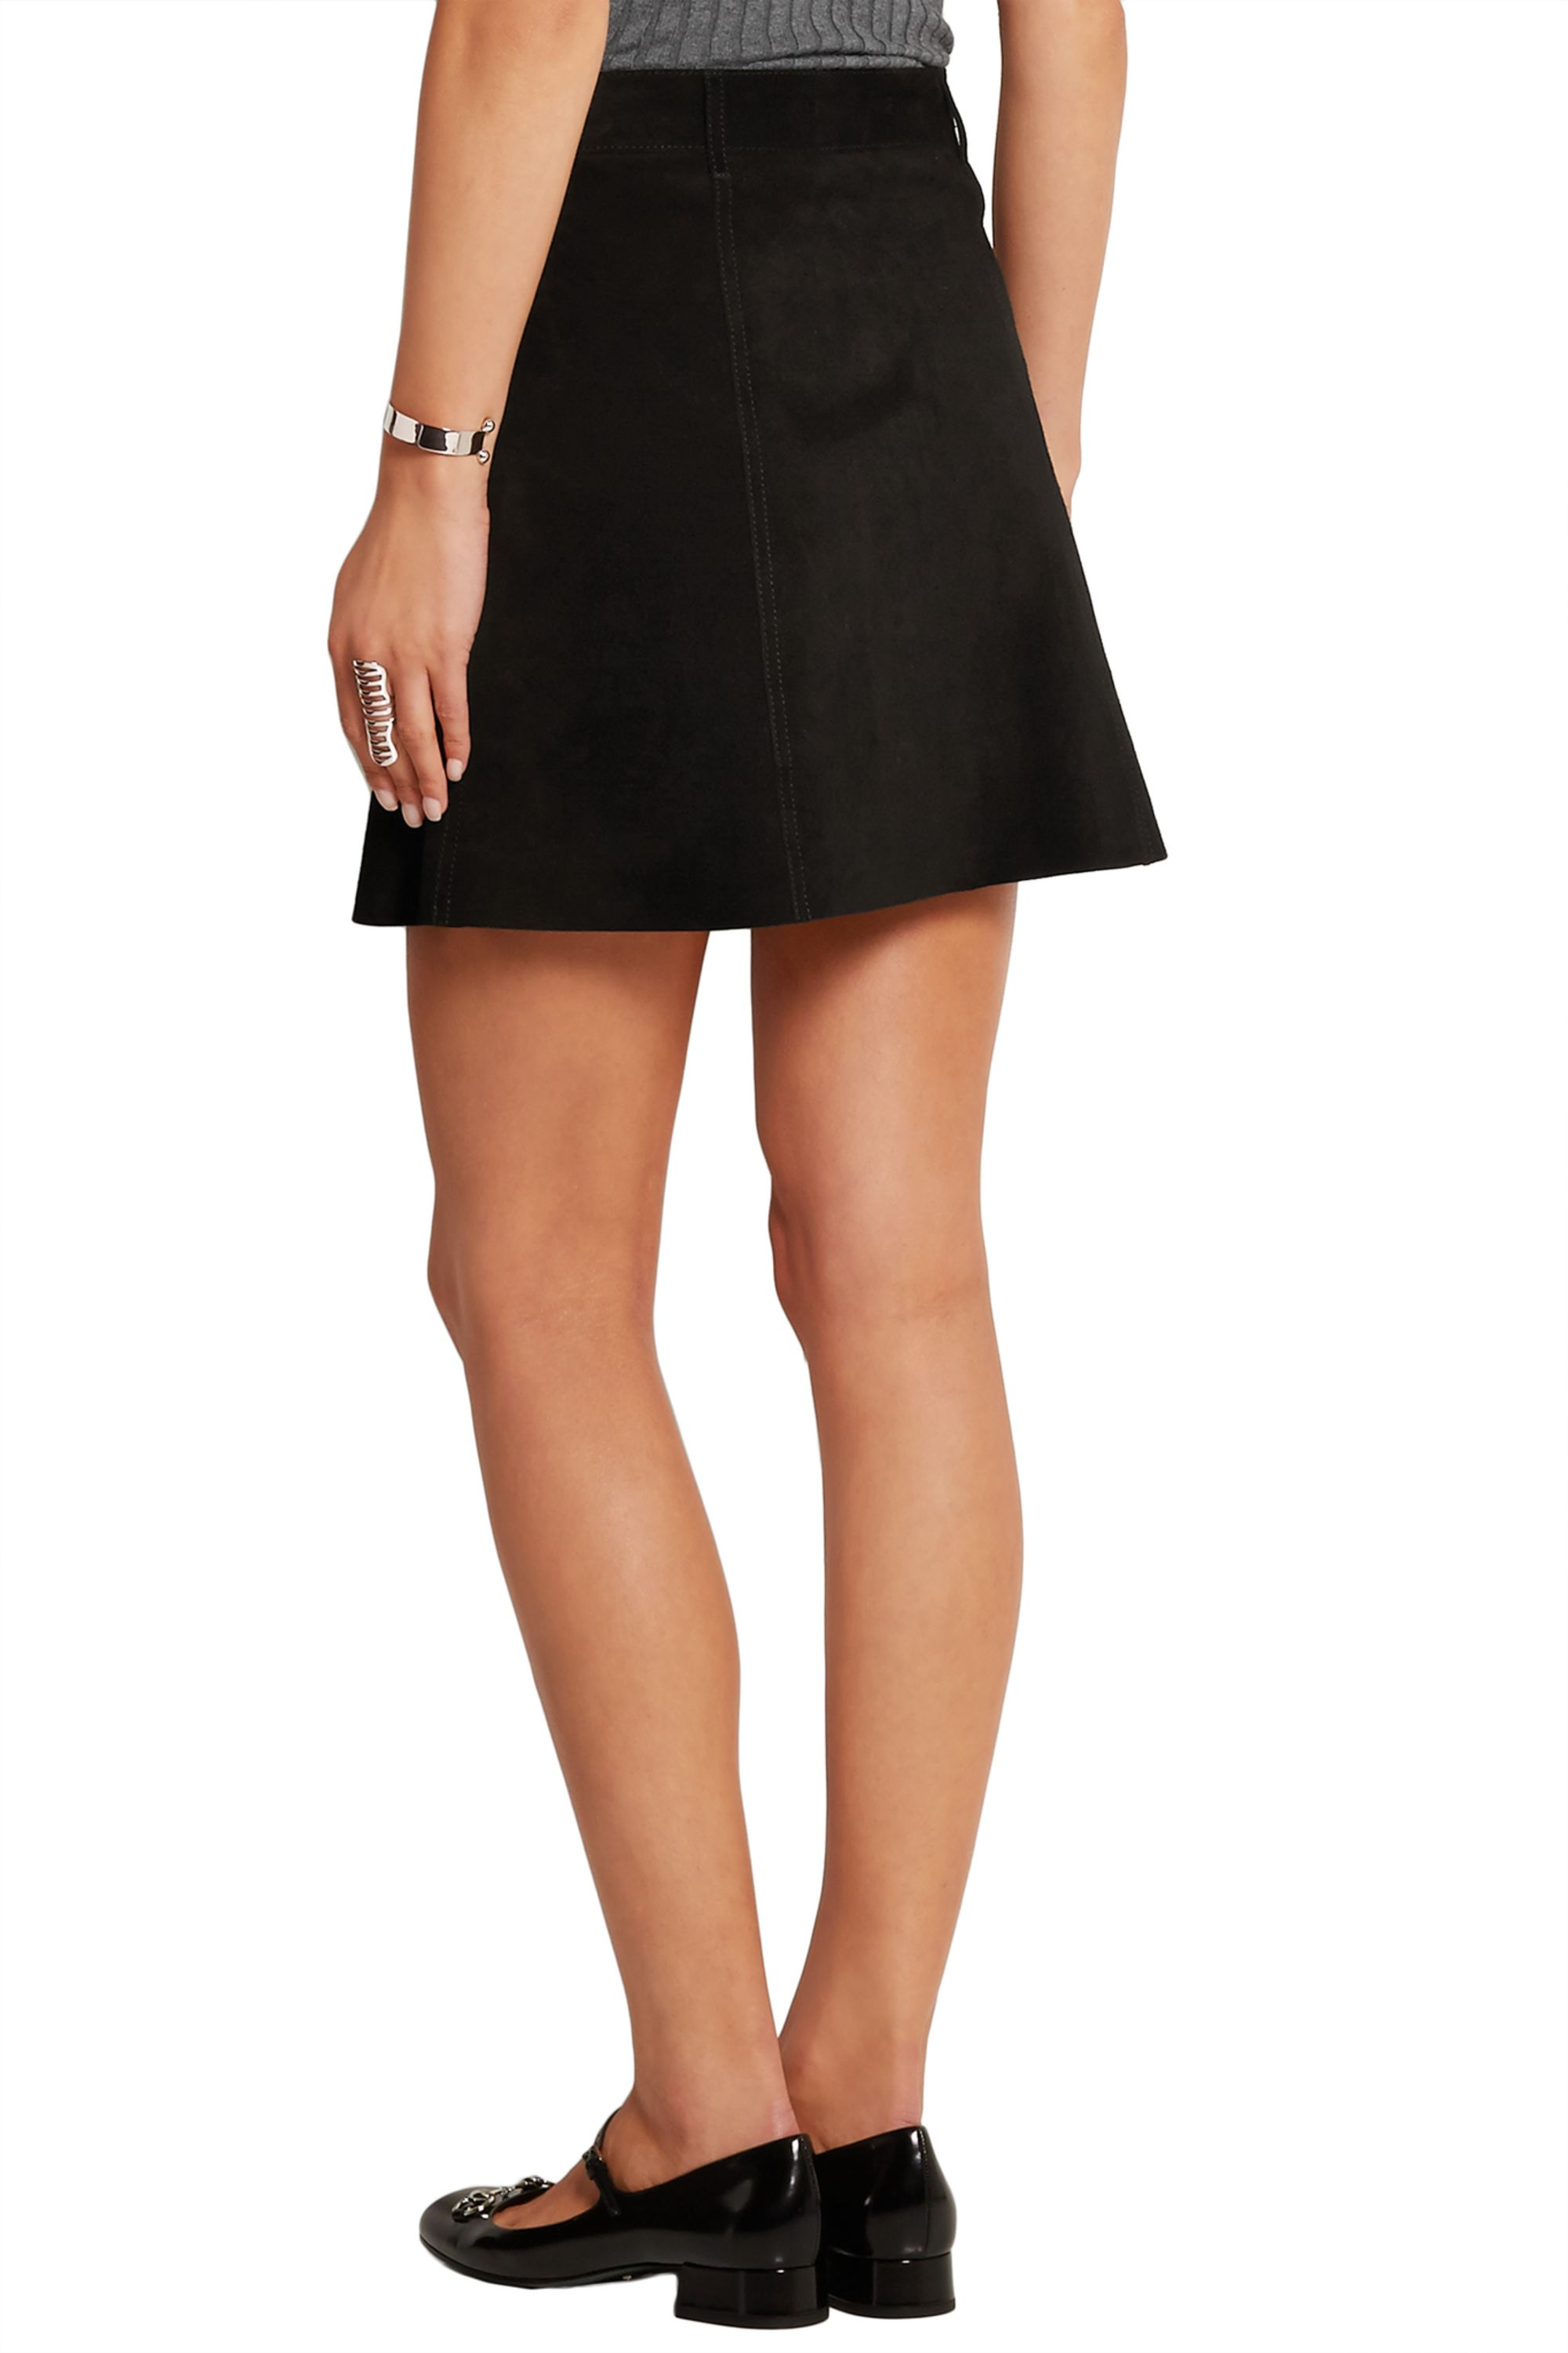 Alexa Chung For AG Jeans The Gove suede mini skirt